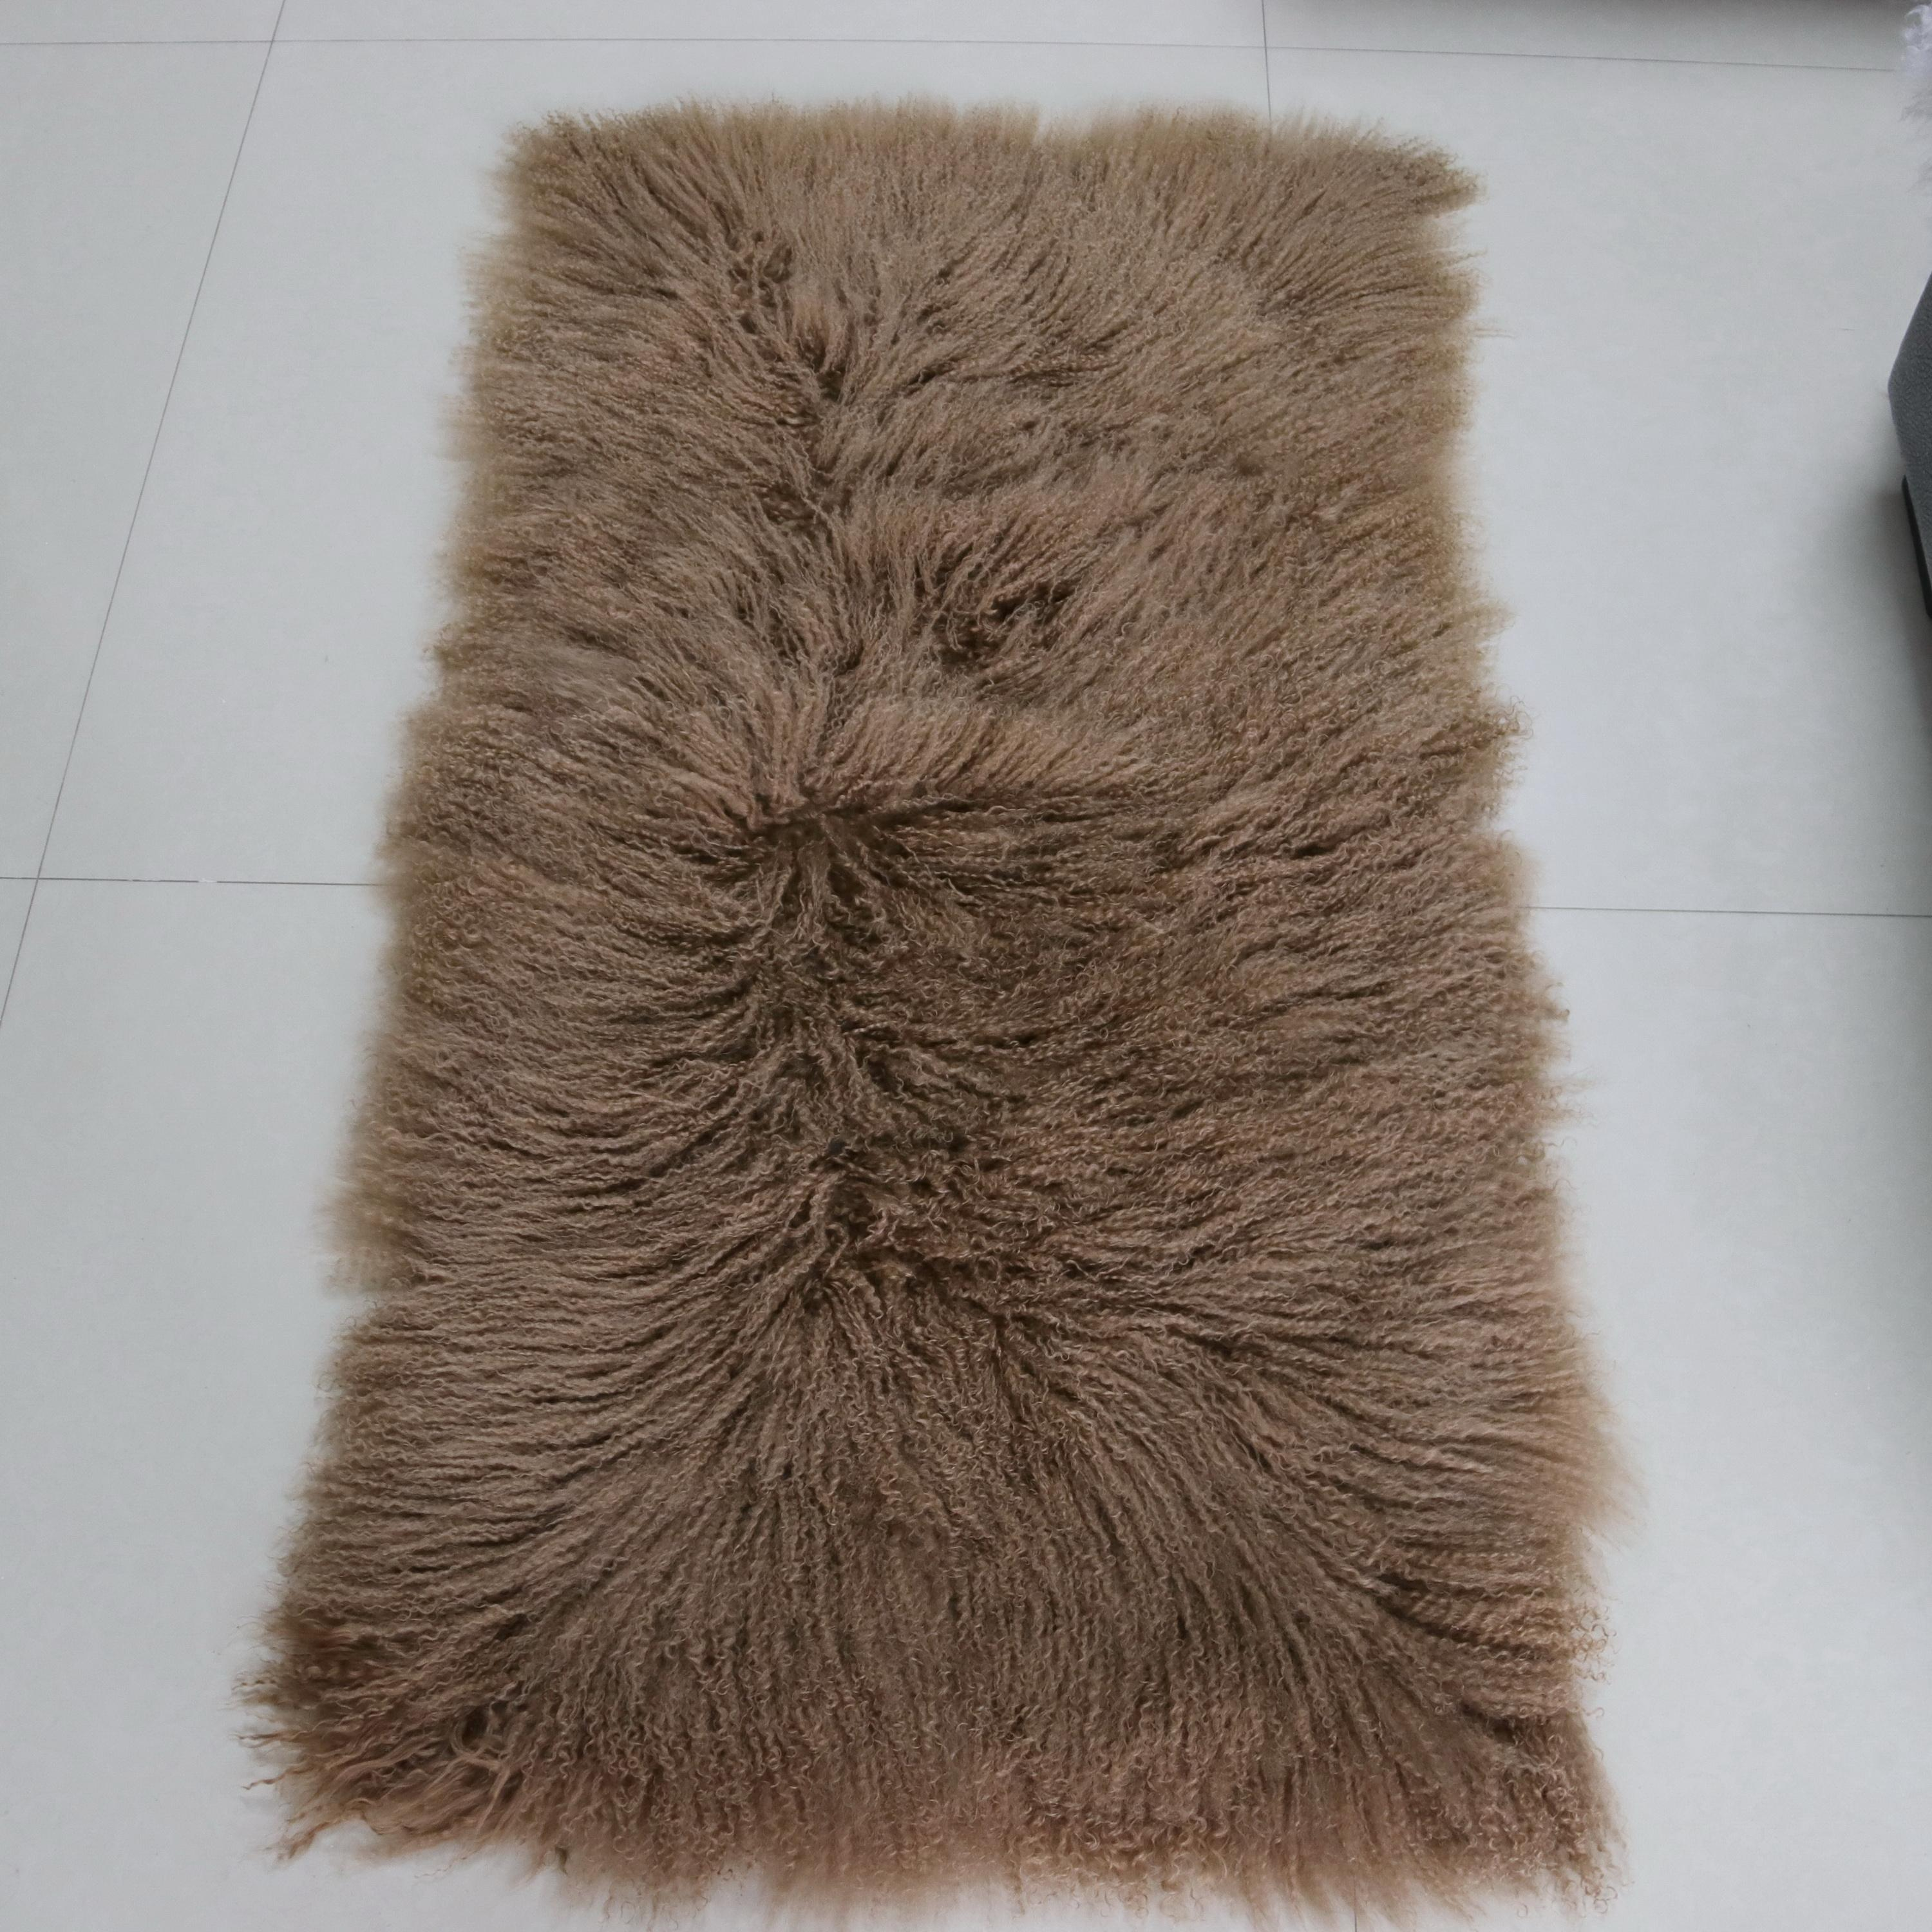 Long curly hair Mongolian Tibet Lamb fur plate rug throw Indigo blue new authentic real genuine sheepskin